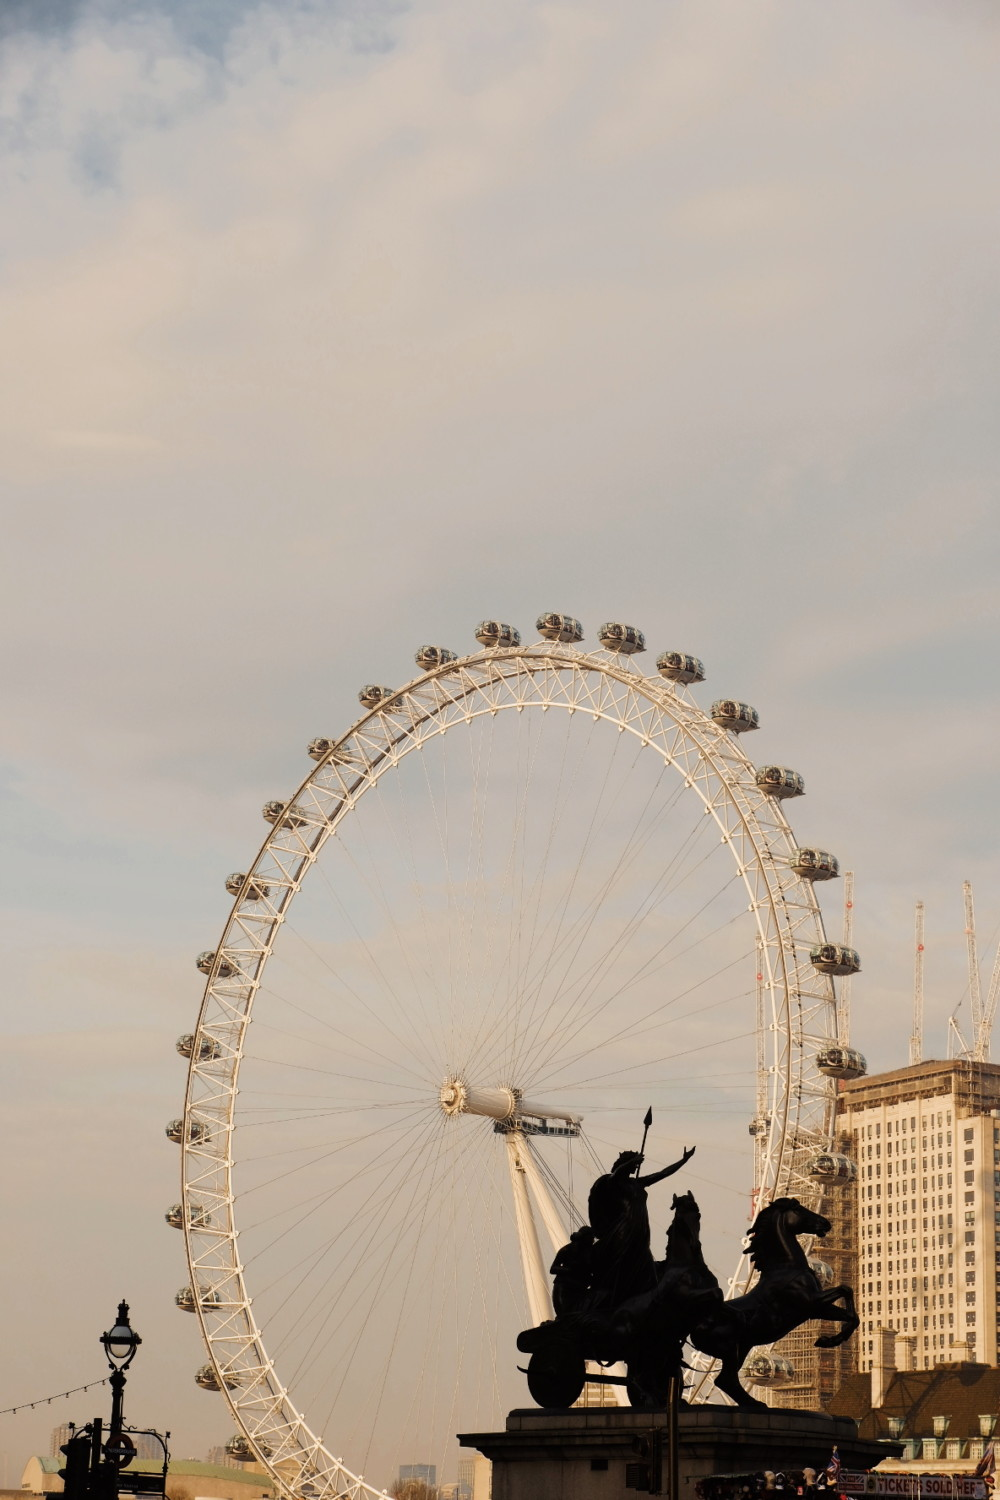 Londres - London - London Eye